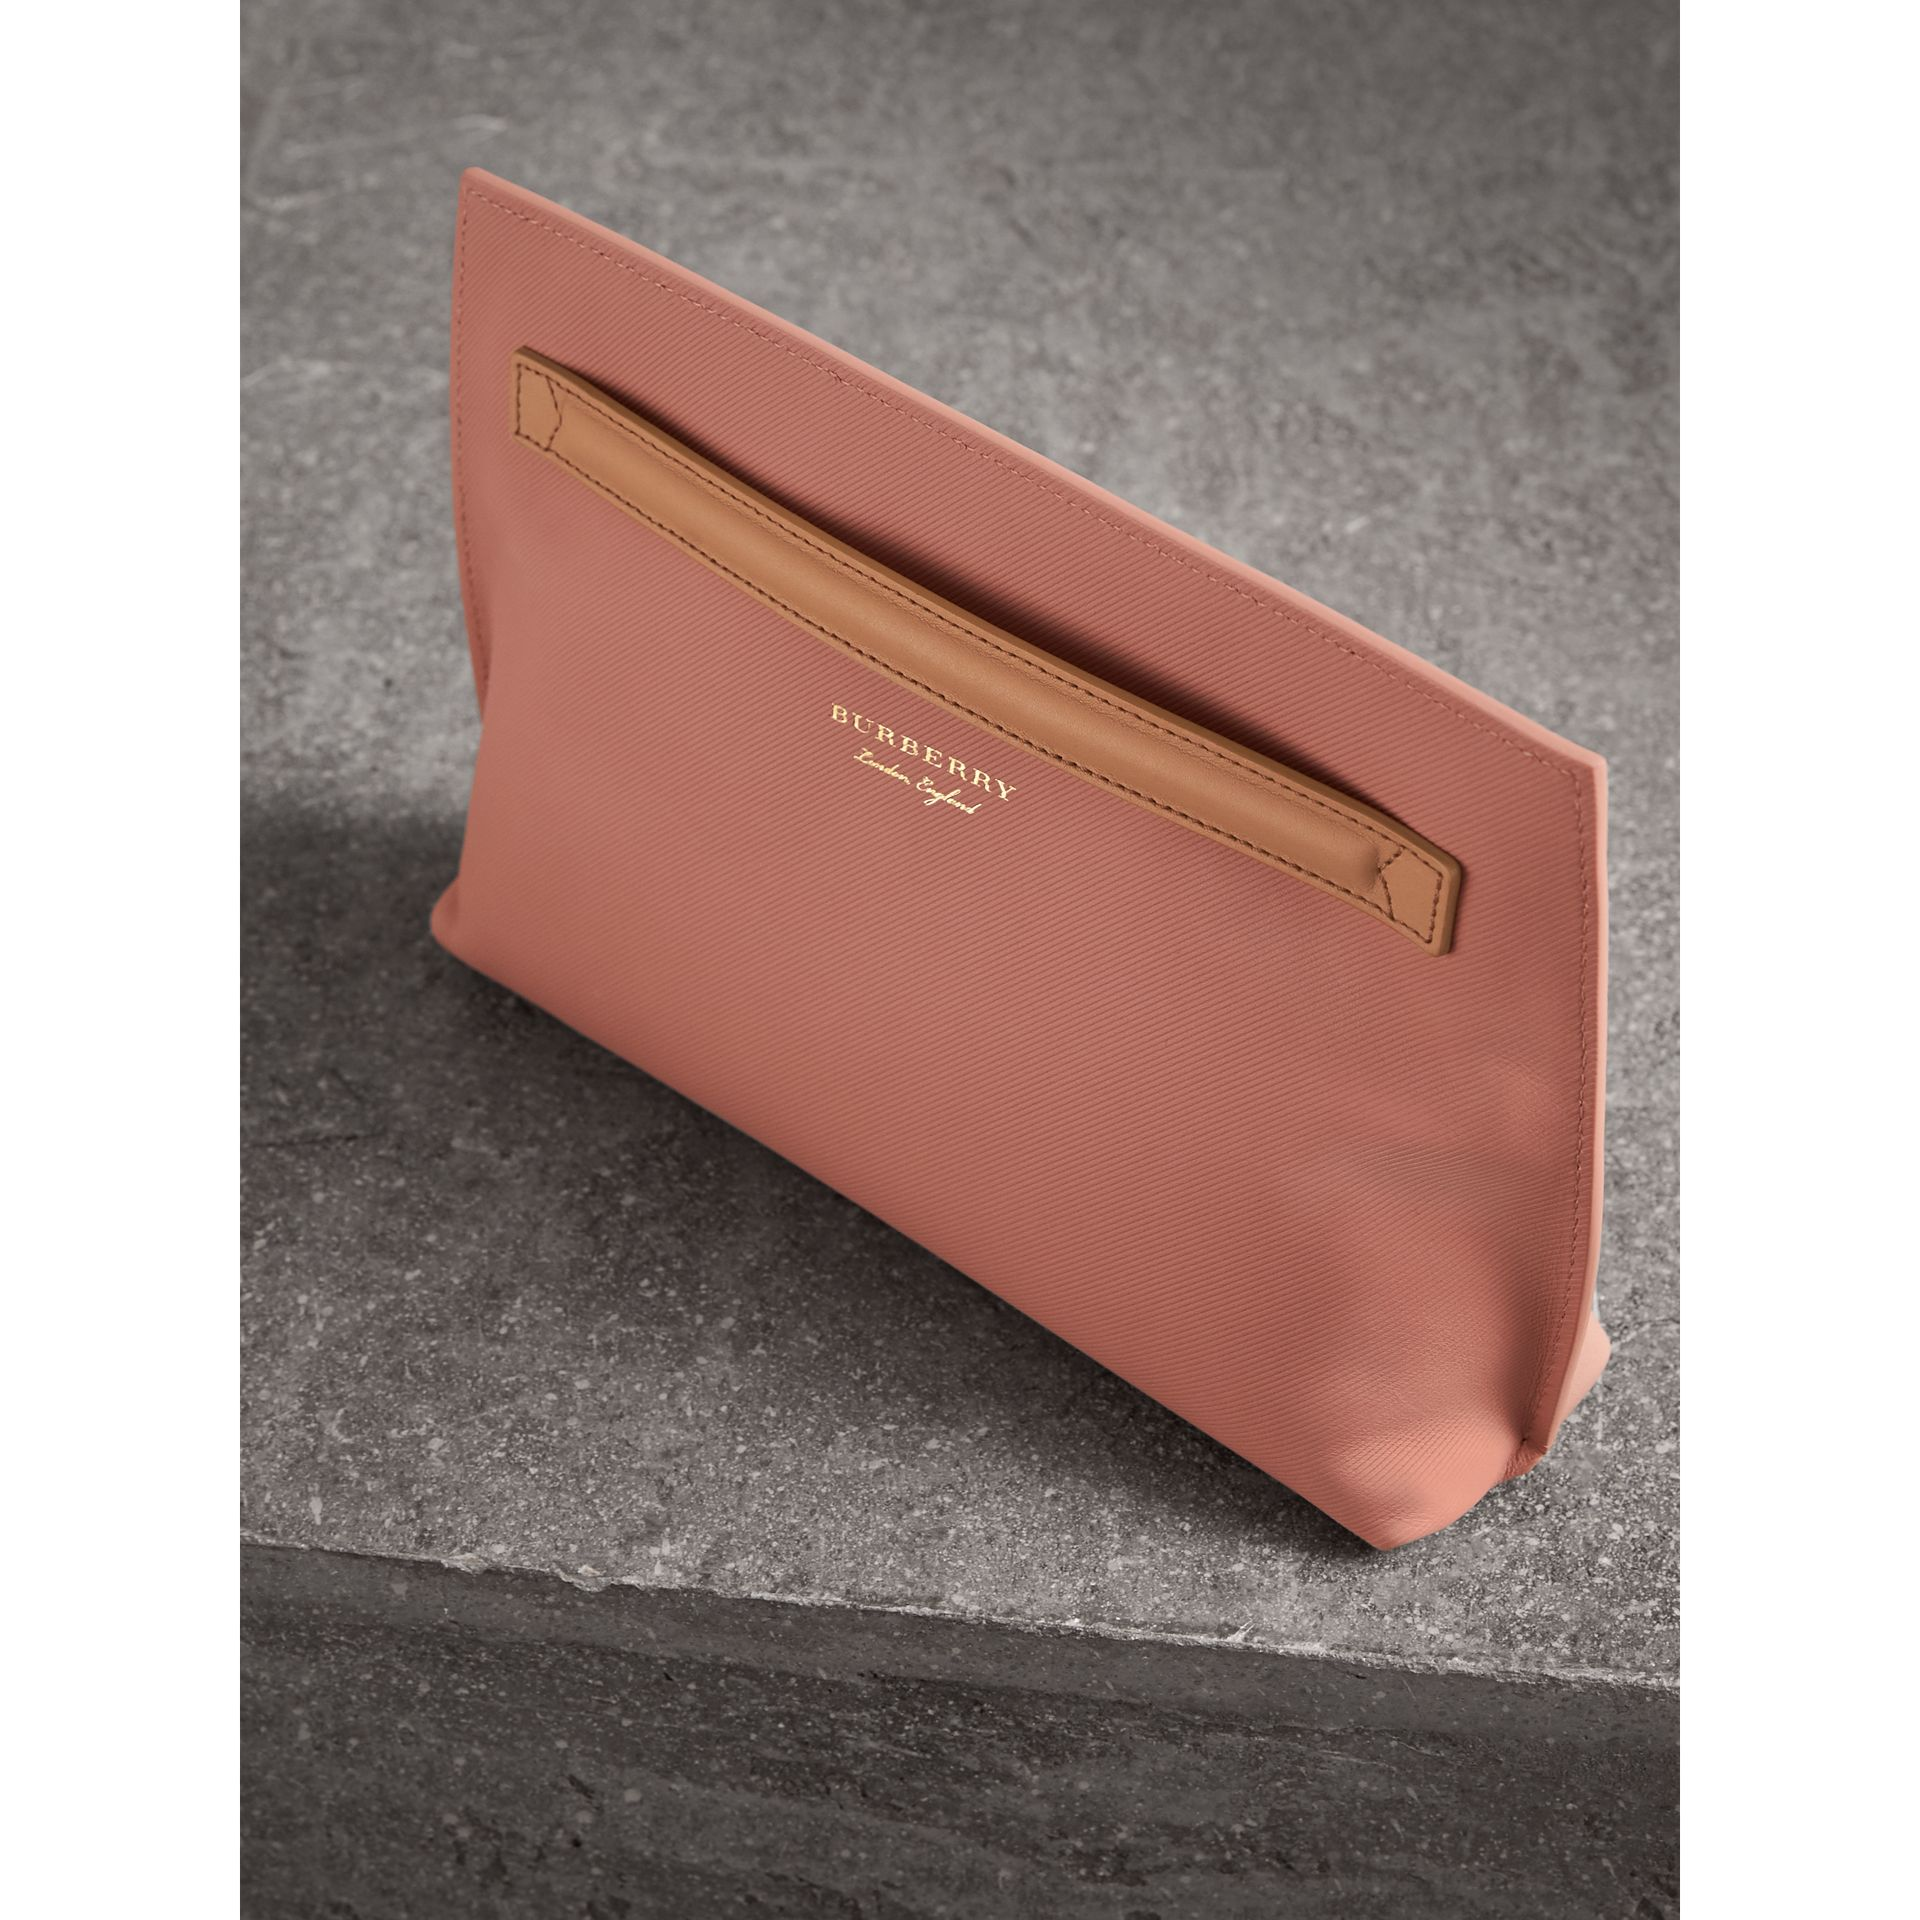 Two-tone Trench Leather Wristlet Pouch in Ash Rose/pale Clementine - Women | Burberry - gallery image 3